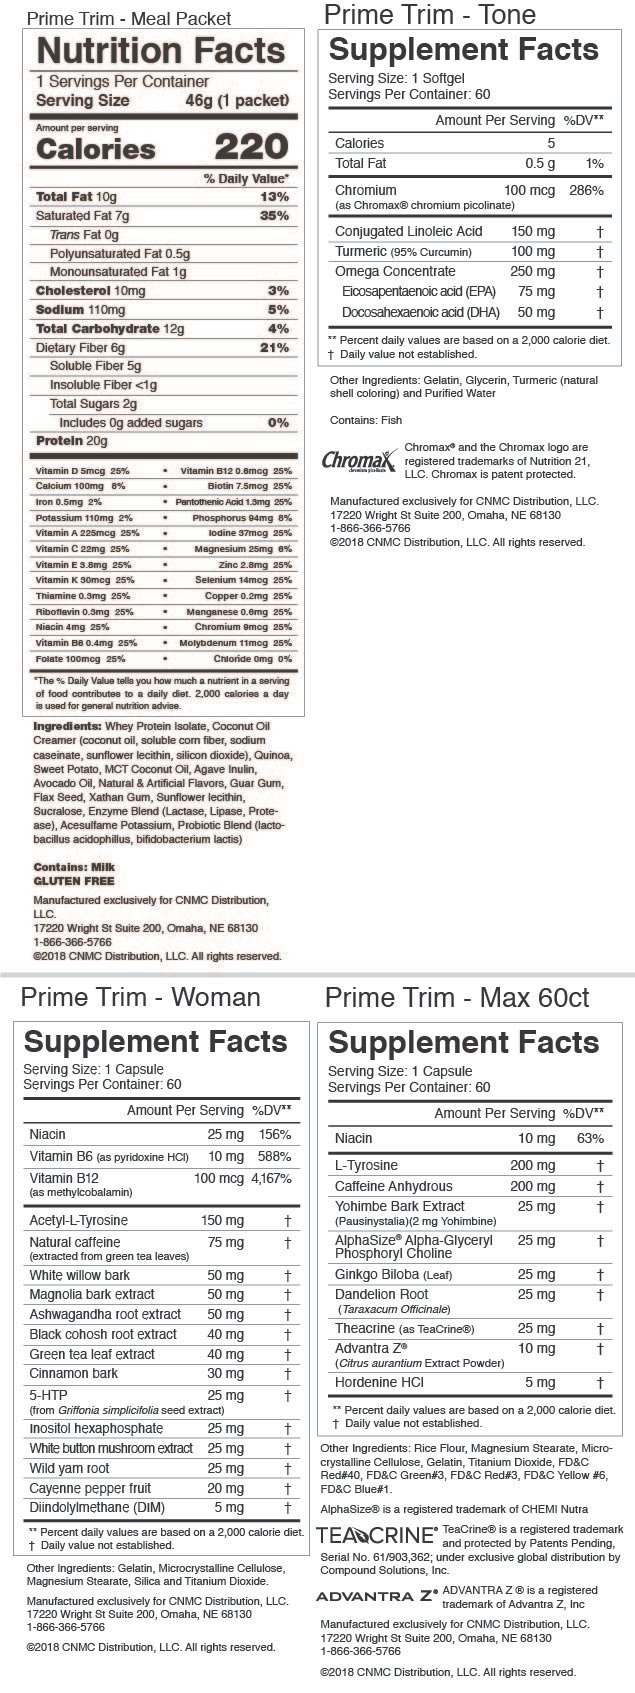 Prime Trim Weight Management Kit -Nutrition Facts